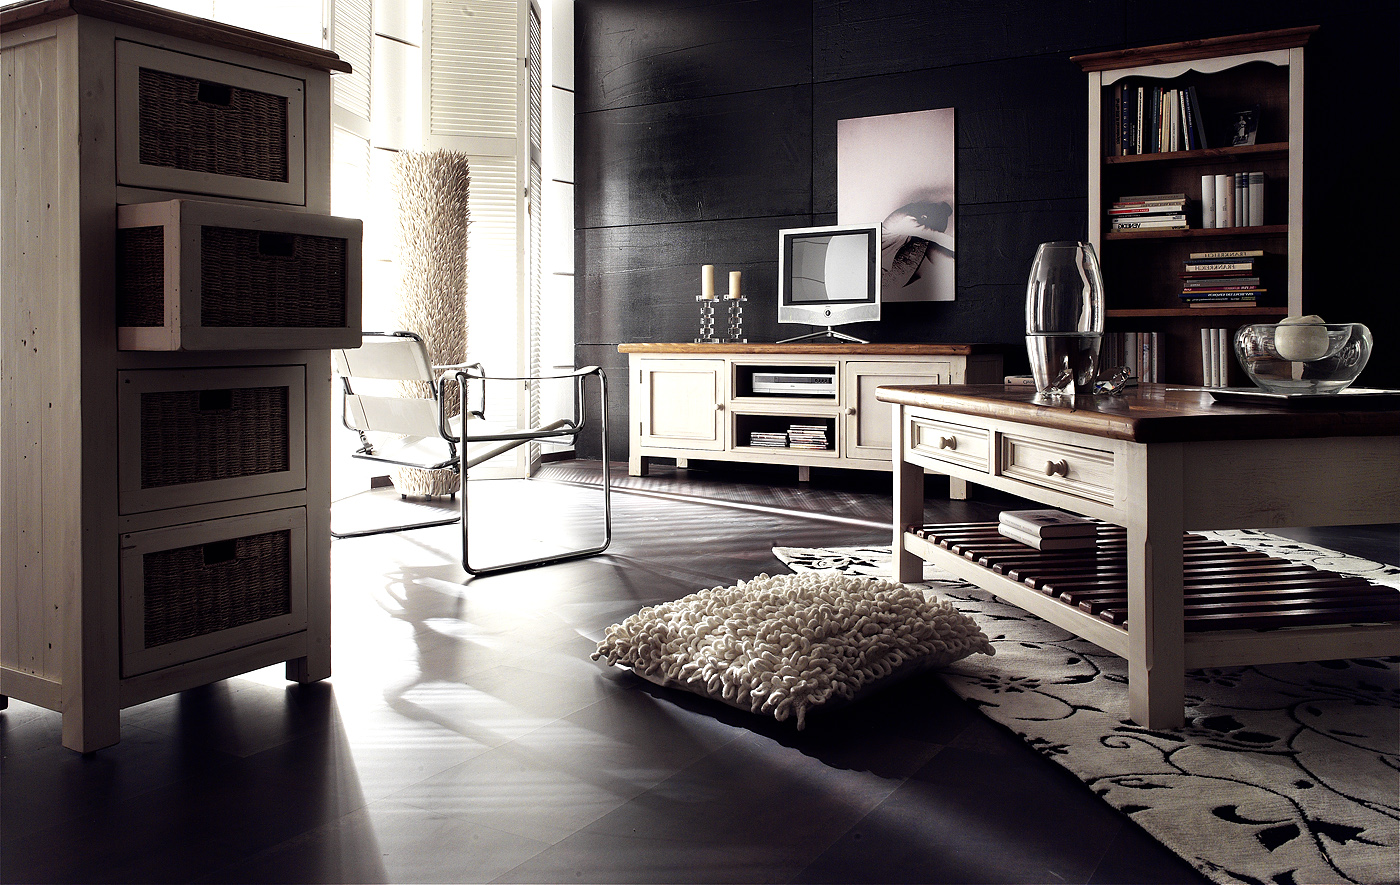 b cherregal bodde landhaus wei robas lund ebay. Black Bedroom Furniture Sets. Home Design Ideas